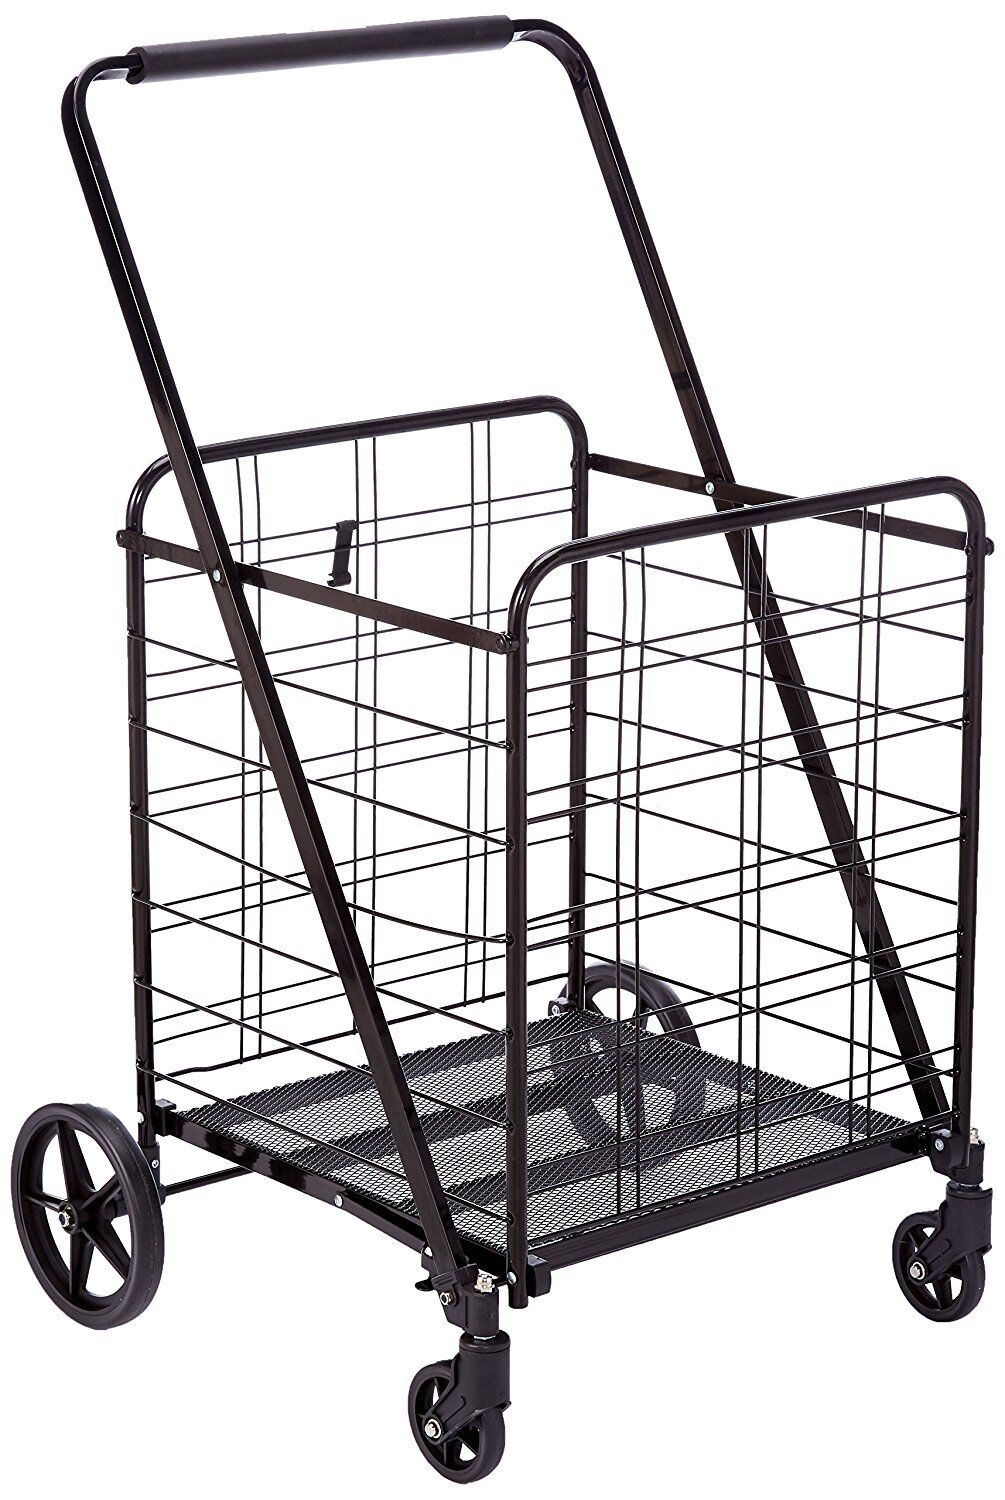 Heavy Duty 360 Degree Wheel Folding Super Jumbo Shopping Cart,Max 150  LB,Black | Shopping Bin - Search eBay faster